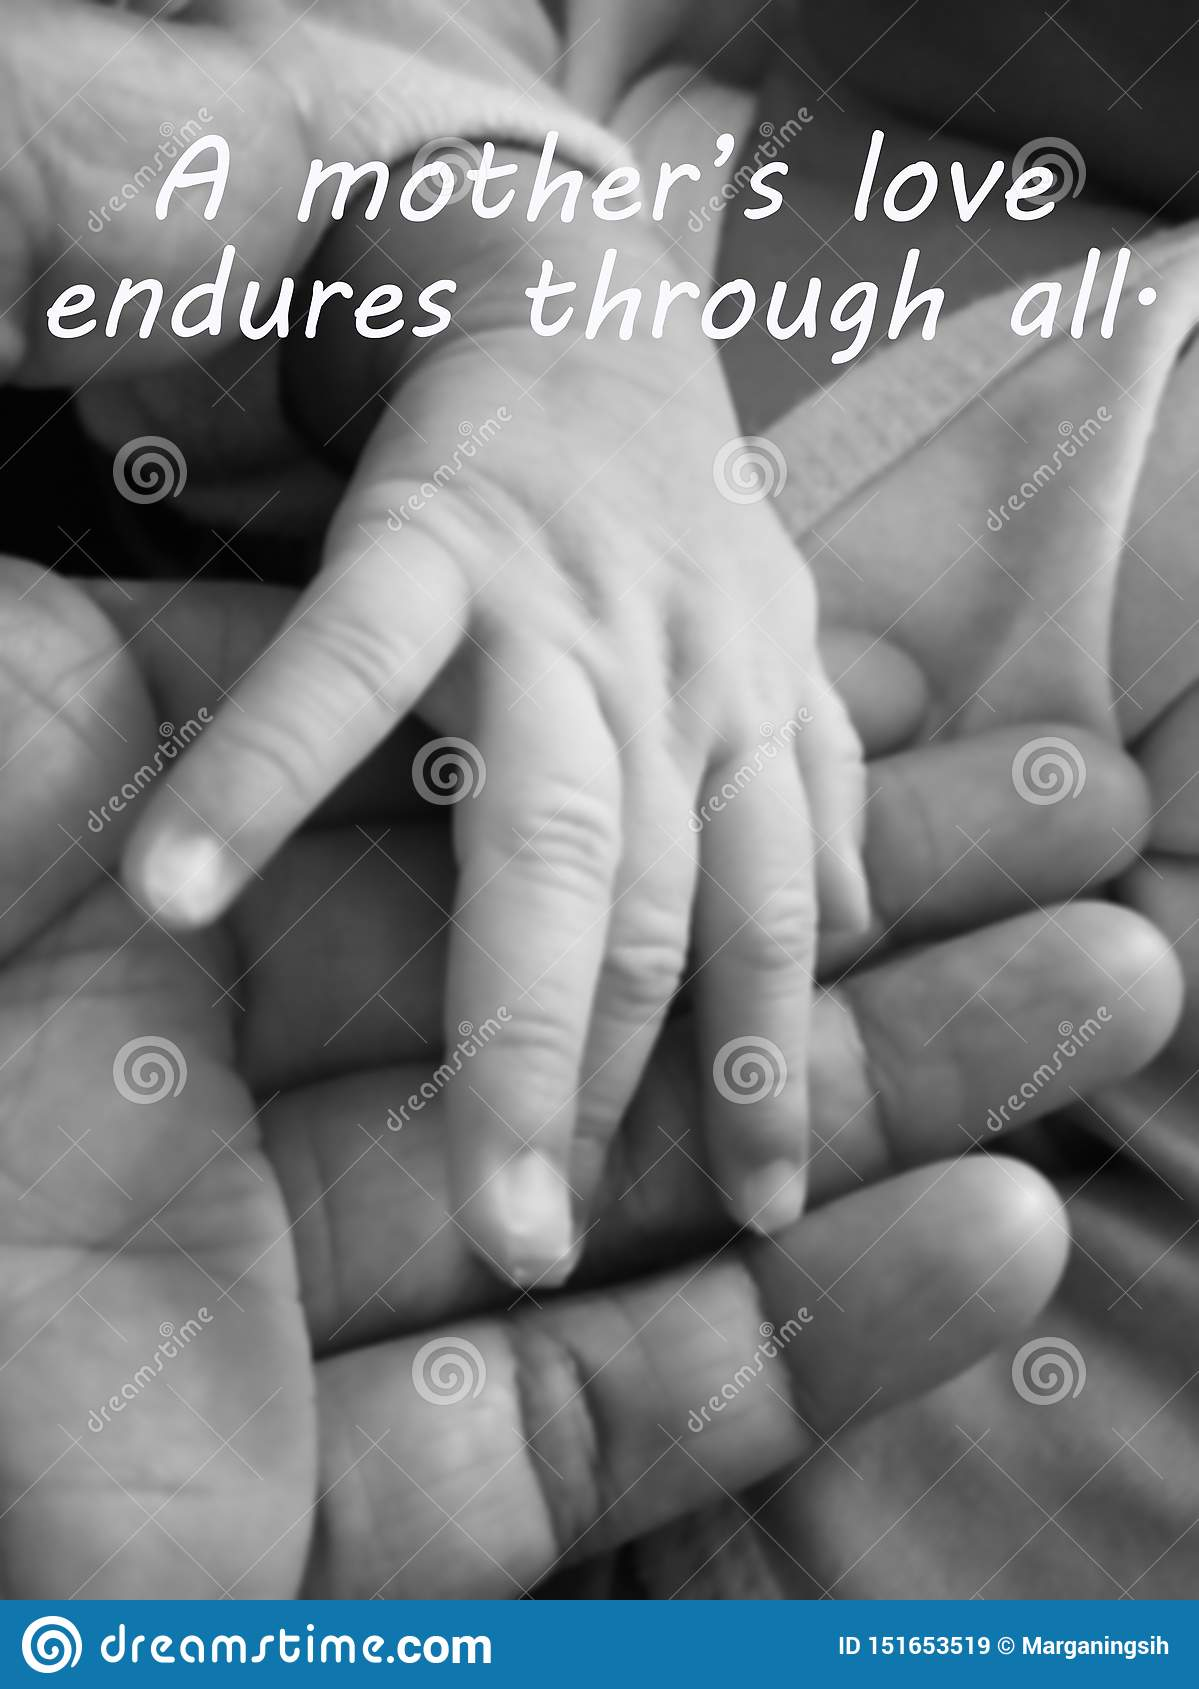 Inspirational Mother Quote A Mothers Love Endures Through All With Blurry Image Of A Fragile Little Baby New Born Hand And Stock Image Image Of Conceptual Connection 151653519